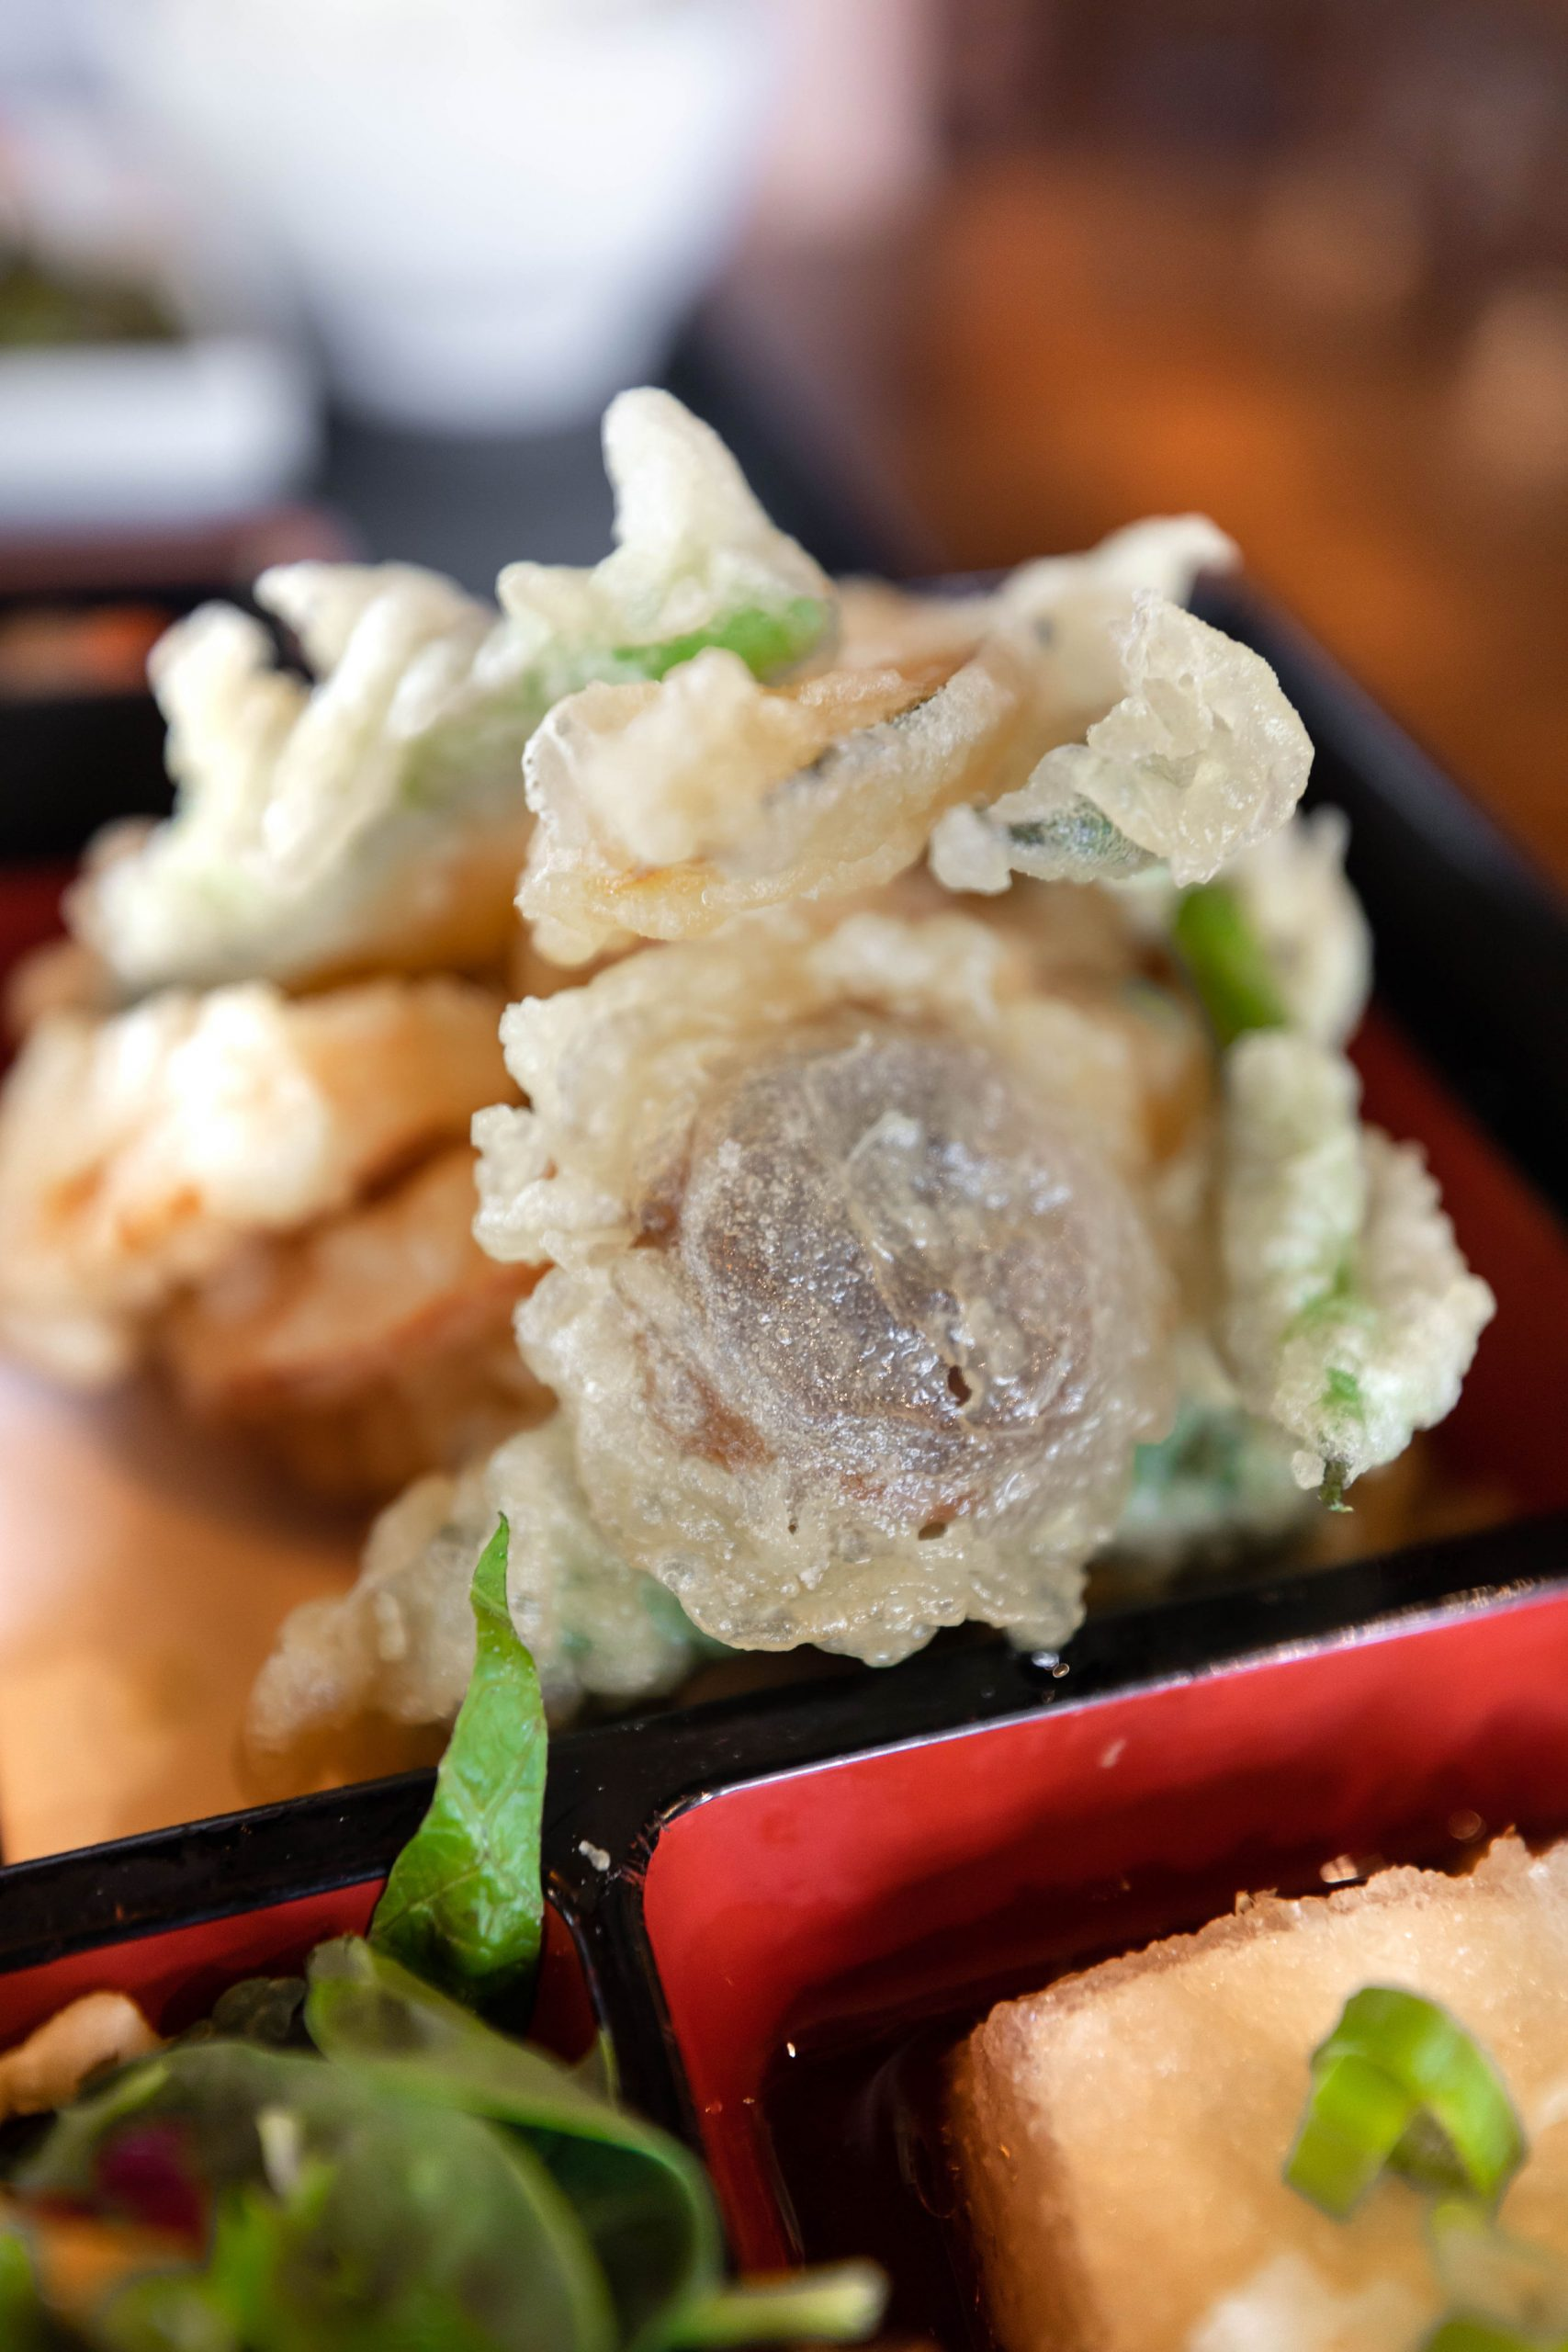 Tempura Shiitake Mushroom at Rakuya Japanese, Chinese Thai Restaurant Bento Box Lunch in Georgetown Washington DC photographed by Luxury Travel Writer Annie Fairfax